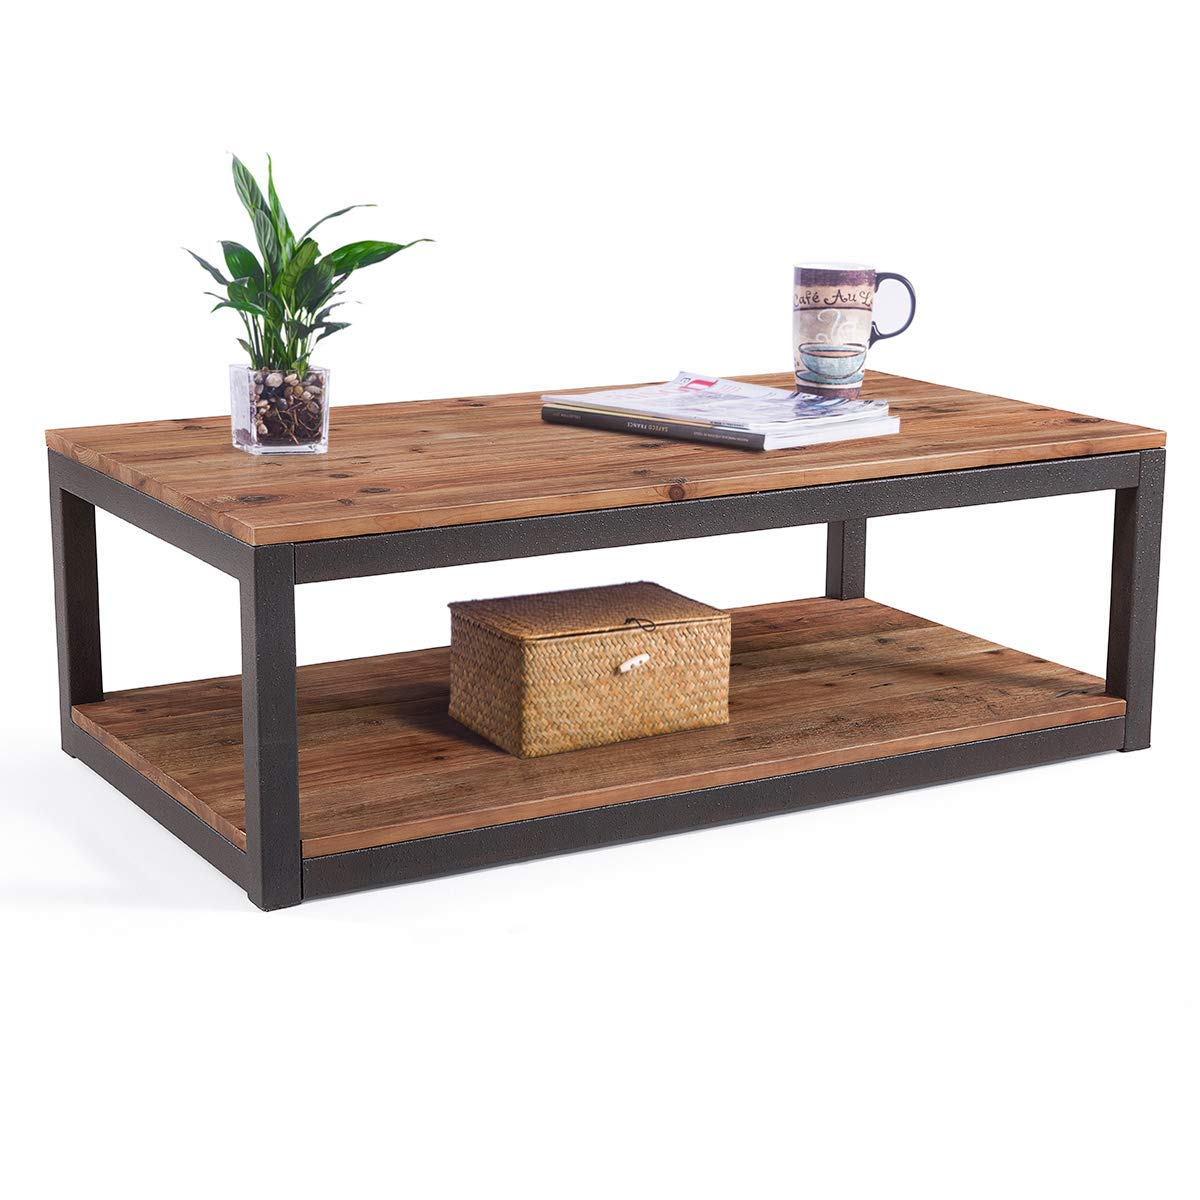 care royal vintage industrial farmhouse coffee wood accent table cocktail with storage open shelf for living room natural solid reclaimed nautical sofa marble moroccan pine